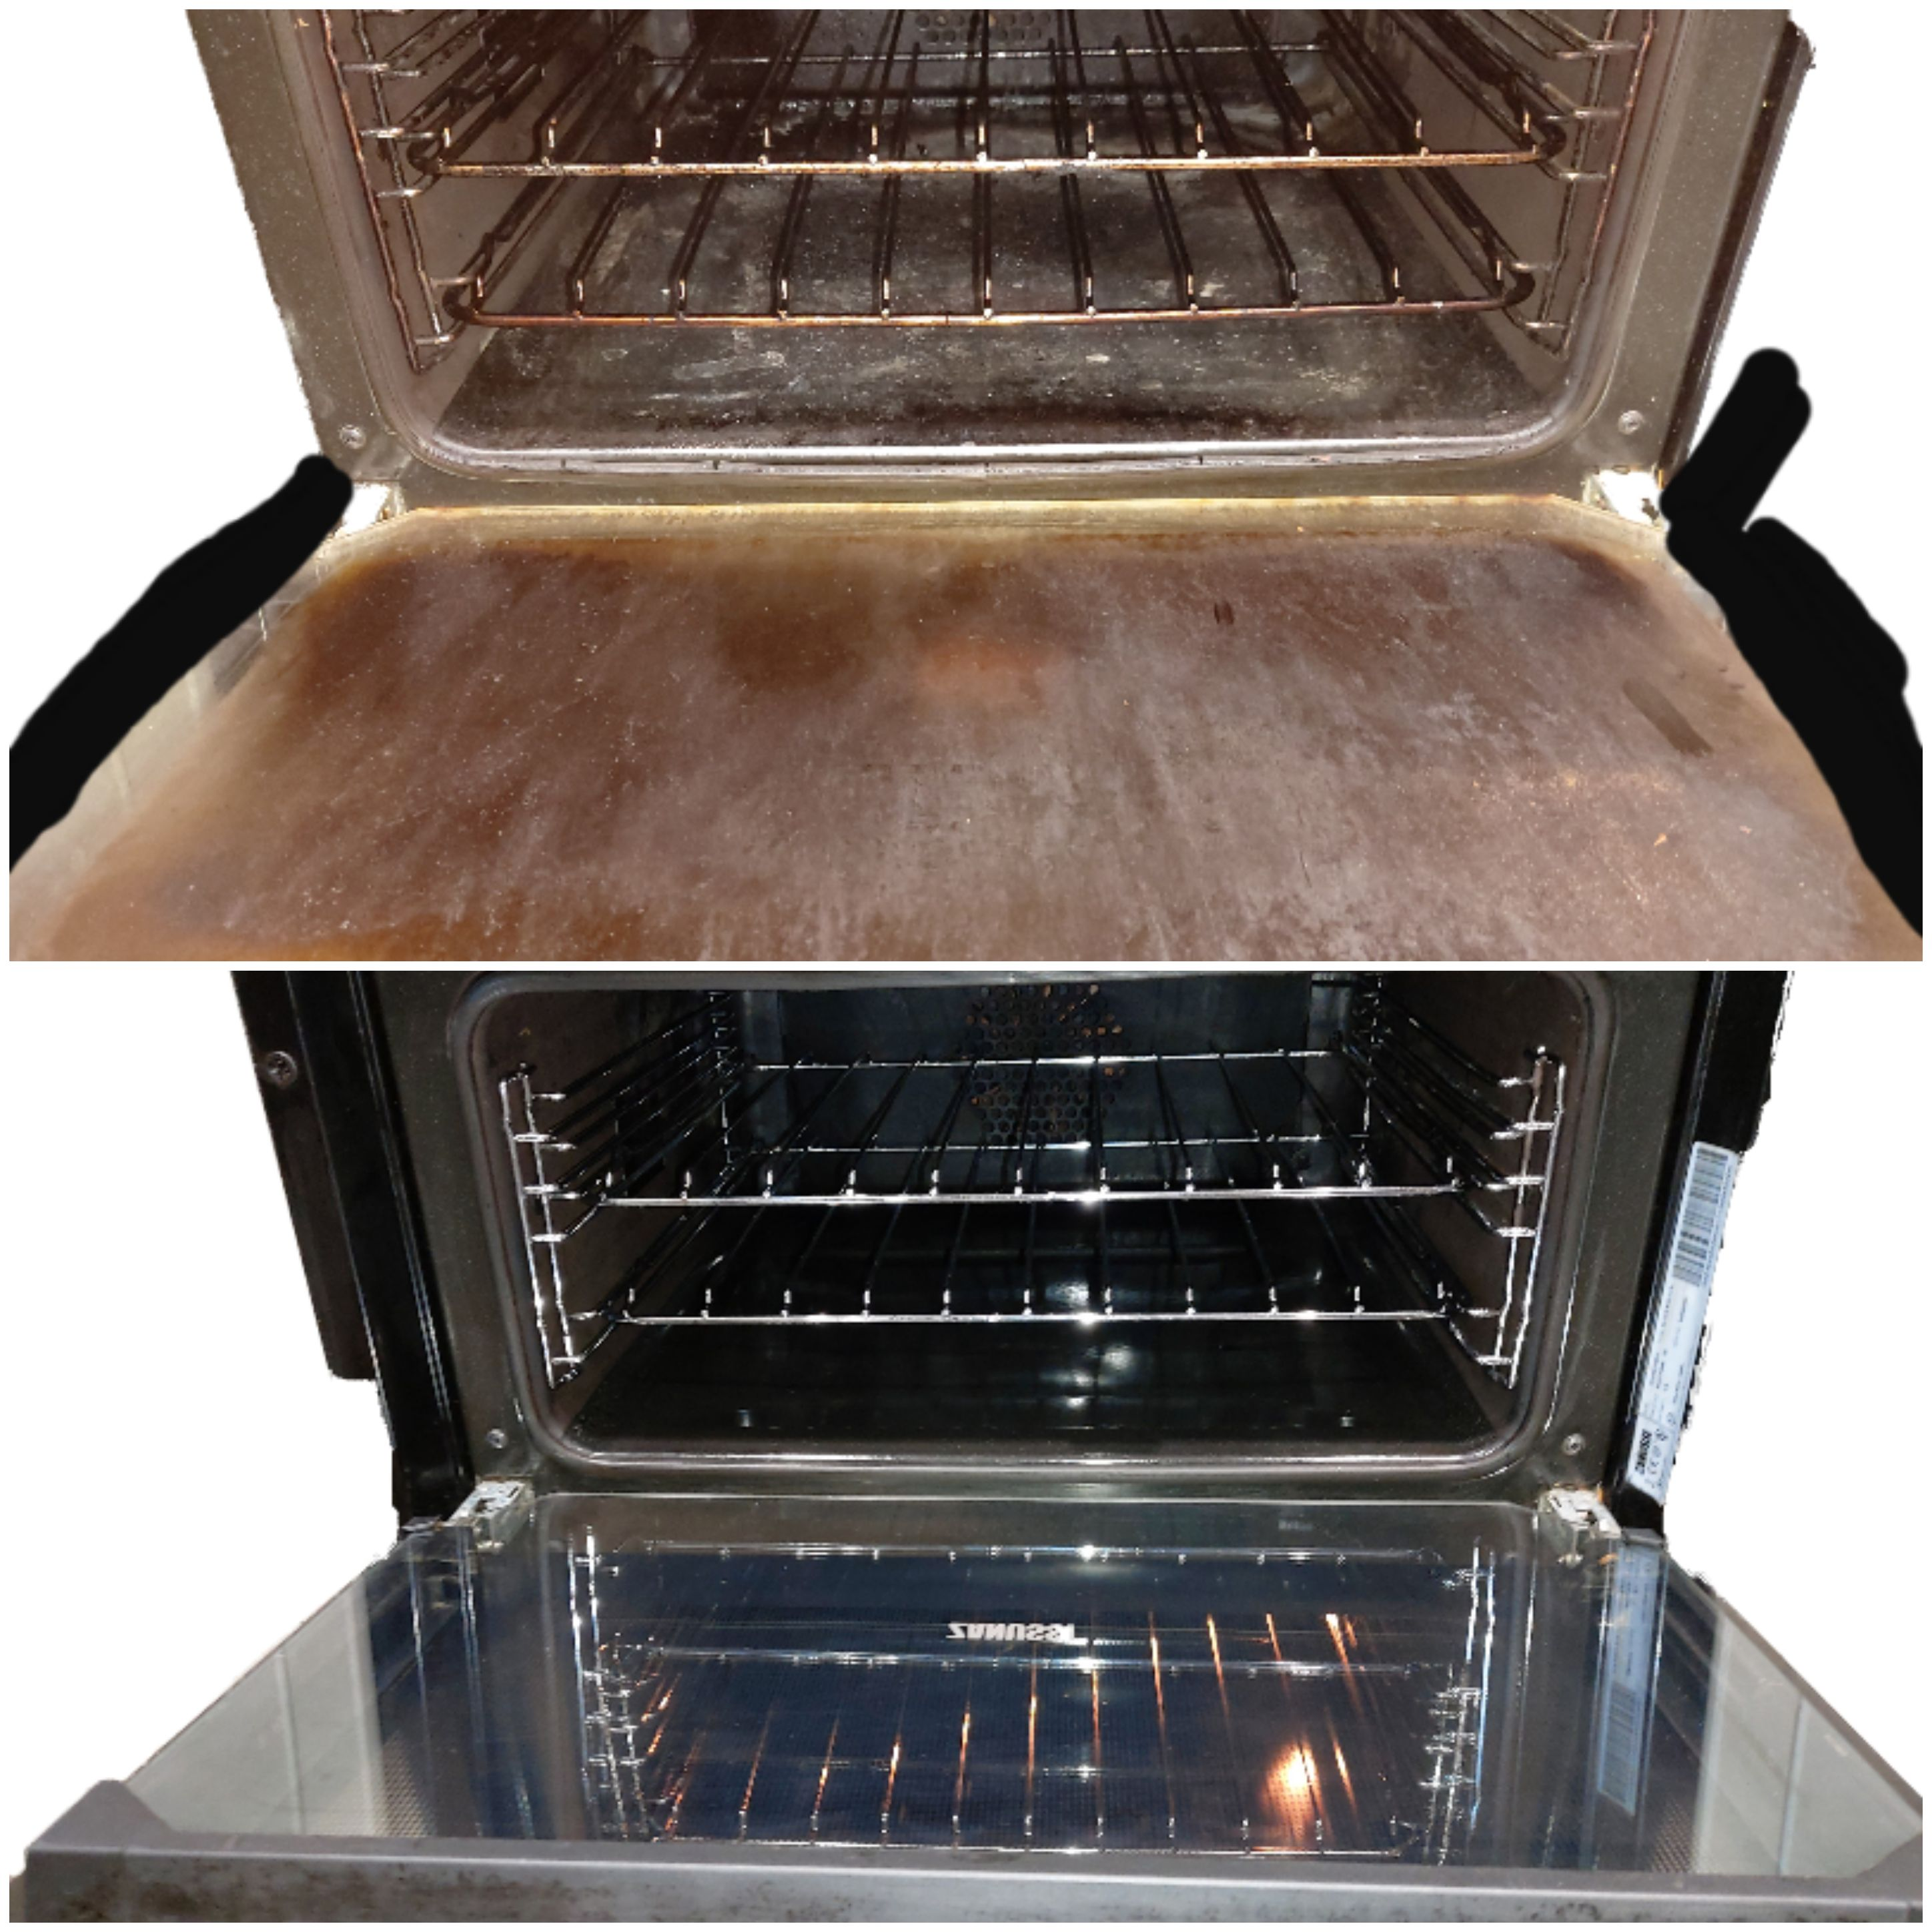 Oven Cleaning Special Offer Now Only £40.00 Household 4